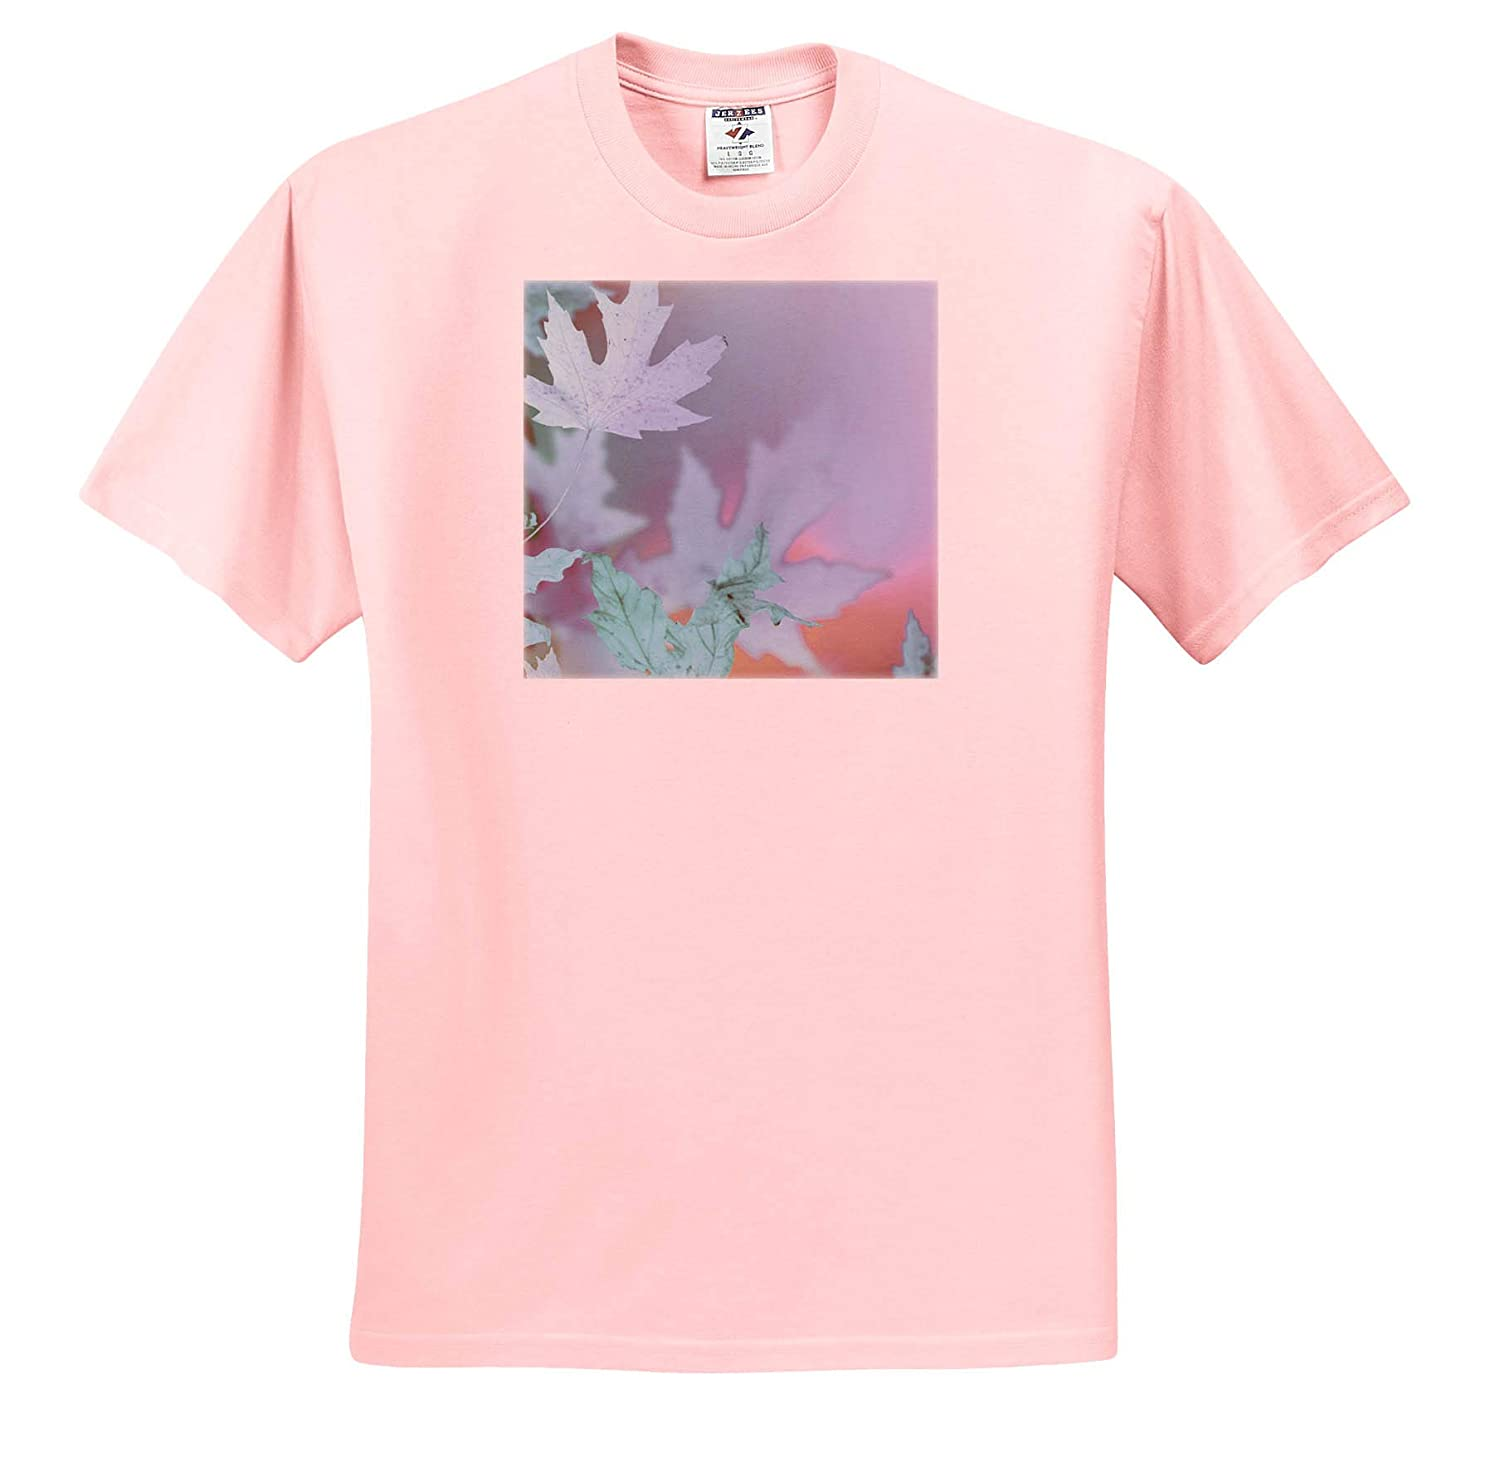 Nature 3dRose Stamp City - T-Shirts an Abstract Photograph of Maple Leaves in Calming Pastel Colors